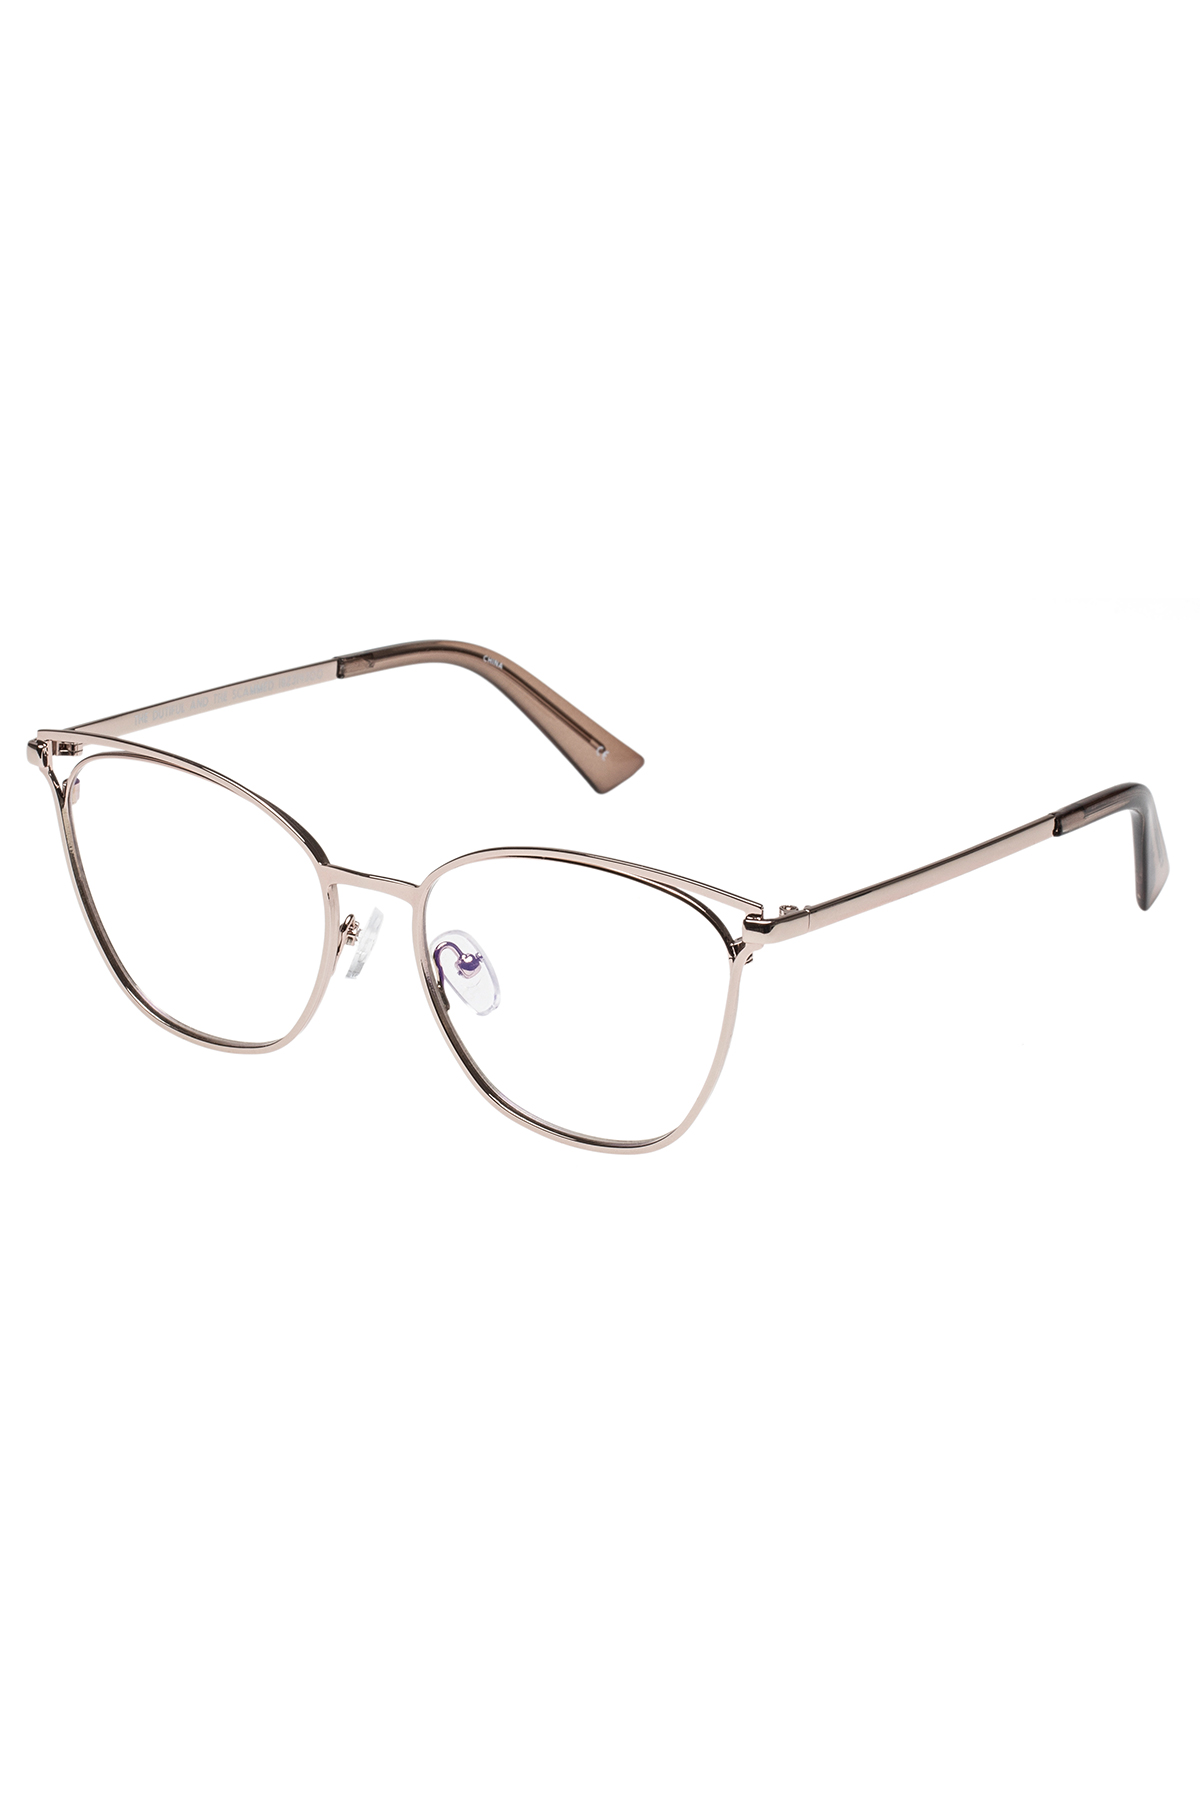 The Dutiful and the Scammed Blue Light Filter Glasses (0.0 Strength) - Rose Gold 1